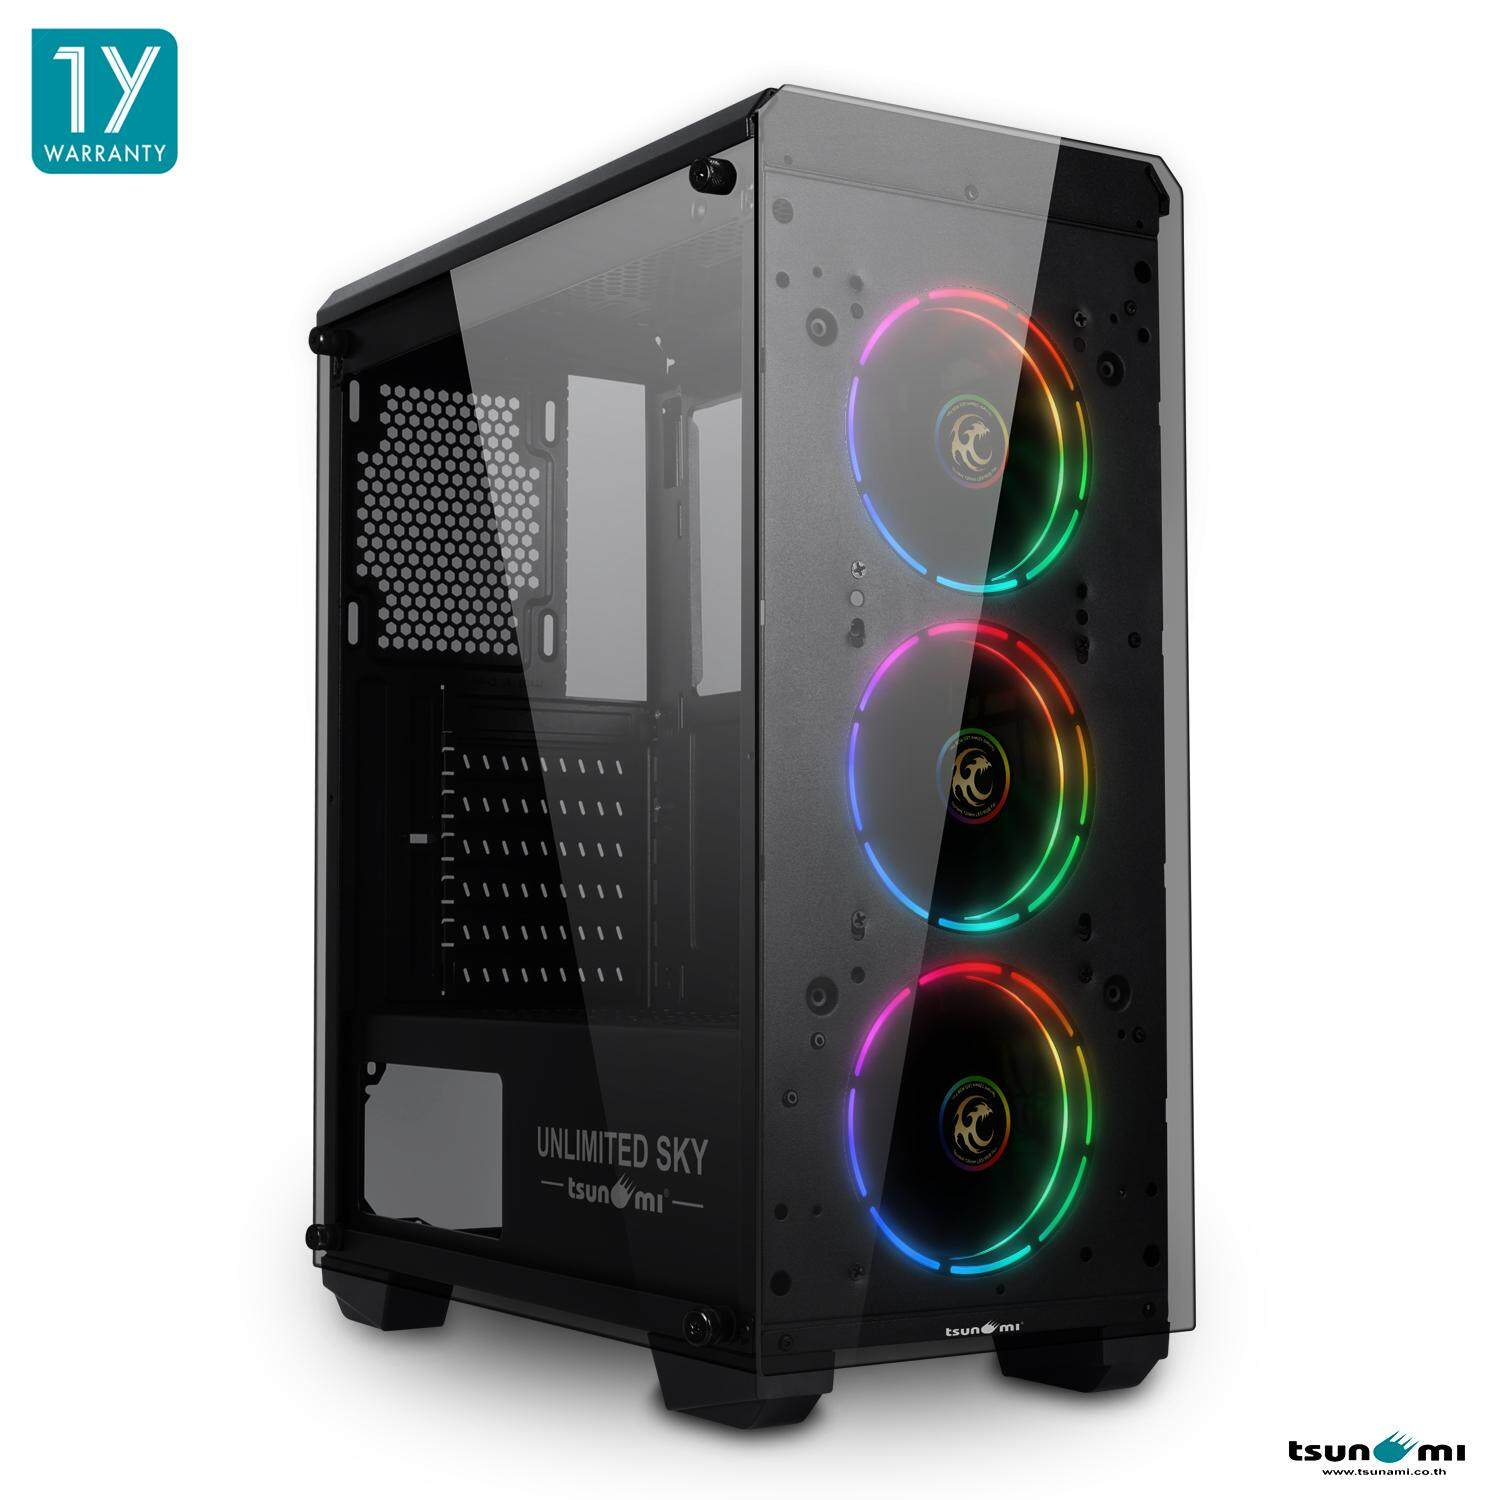 Tsunami Unlimited Sky+ Tempered Glass Super Atx Gaming Case + Tsunami Tron (crgb Sync) 12cm Rgb Cooling Fan X 3 By Fun Republic Co.,ltd..